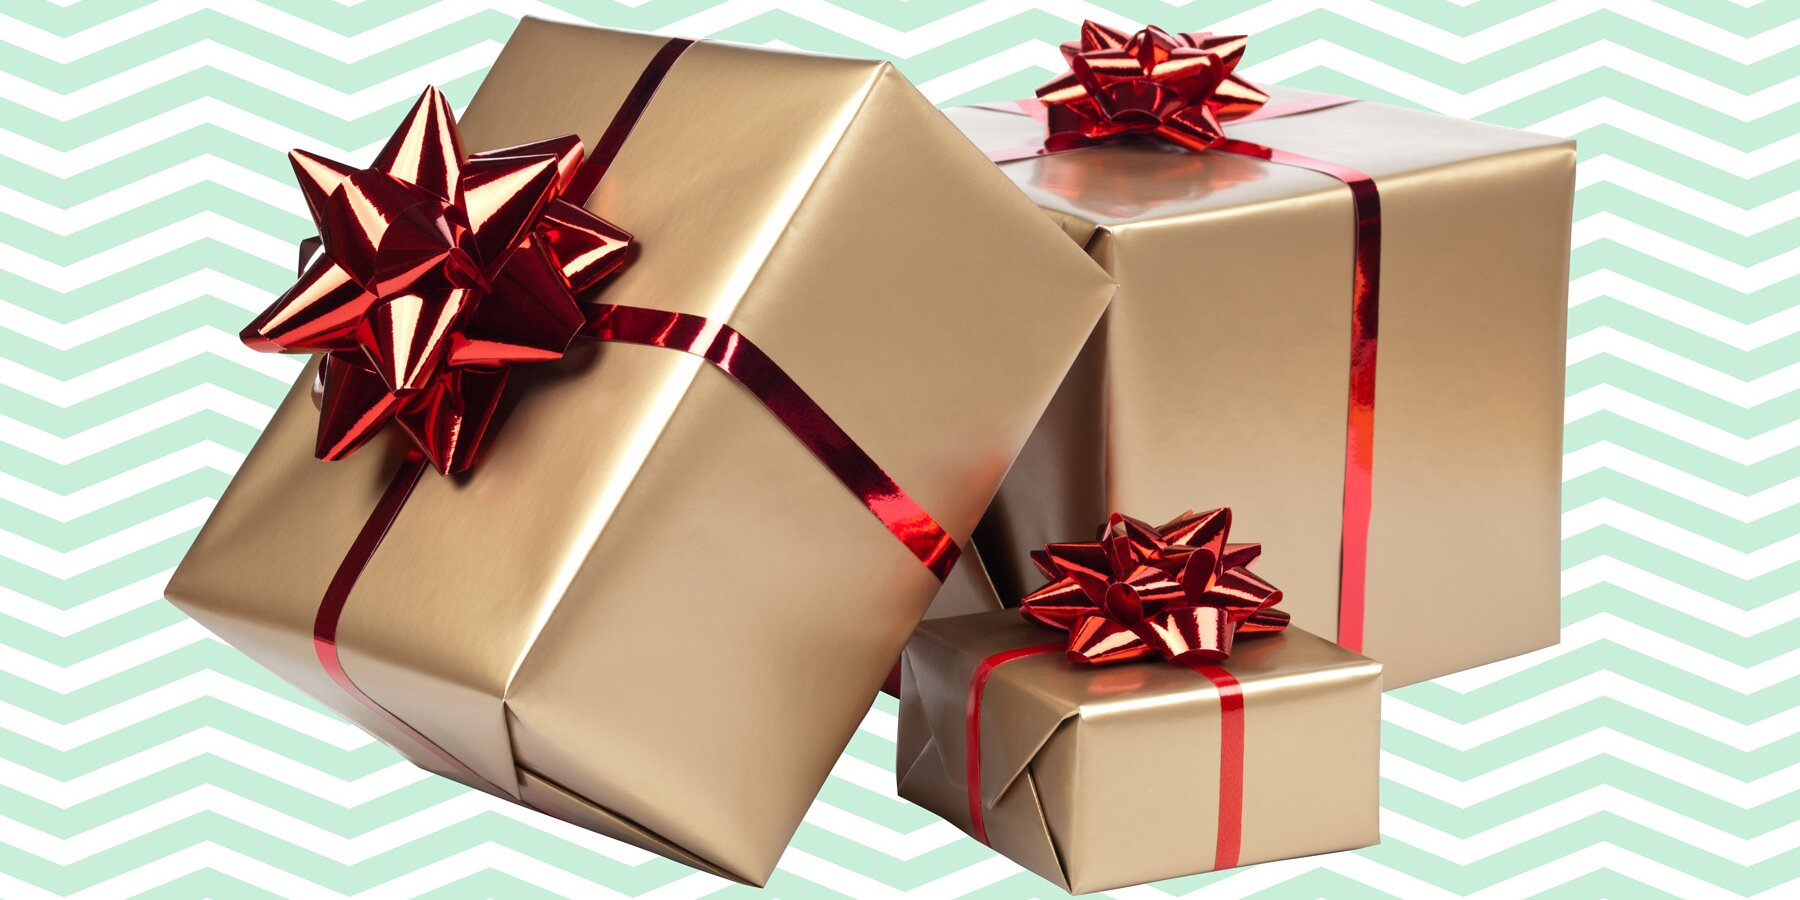 How to Wrap a Present Like a Pro: Step-by-Step Guide & Video | Real Simple